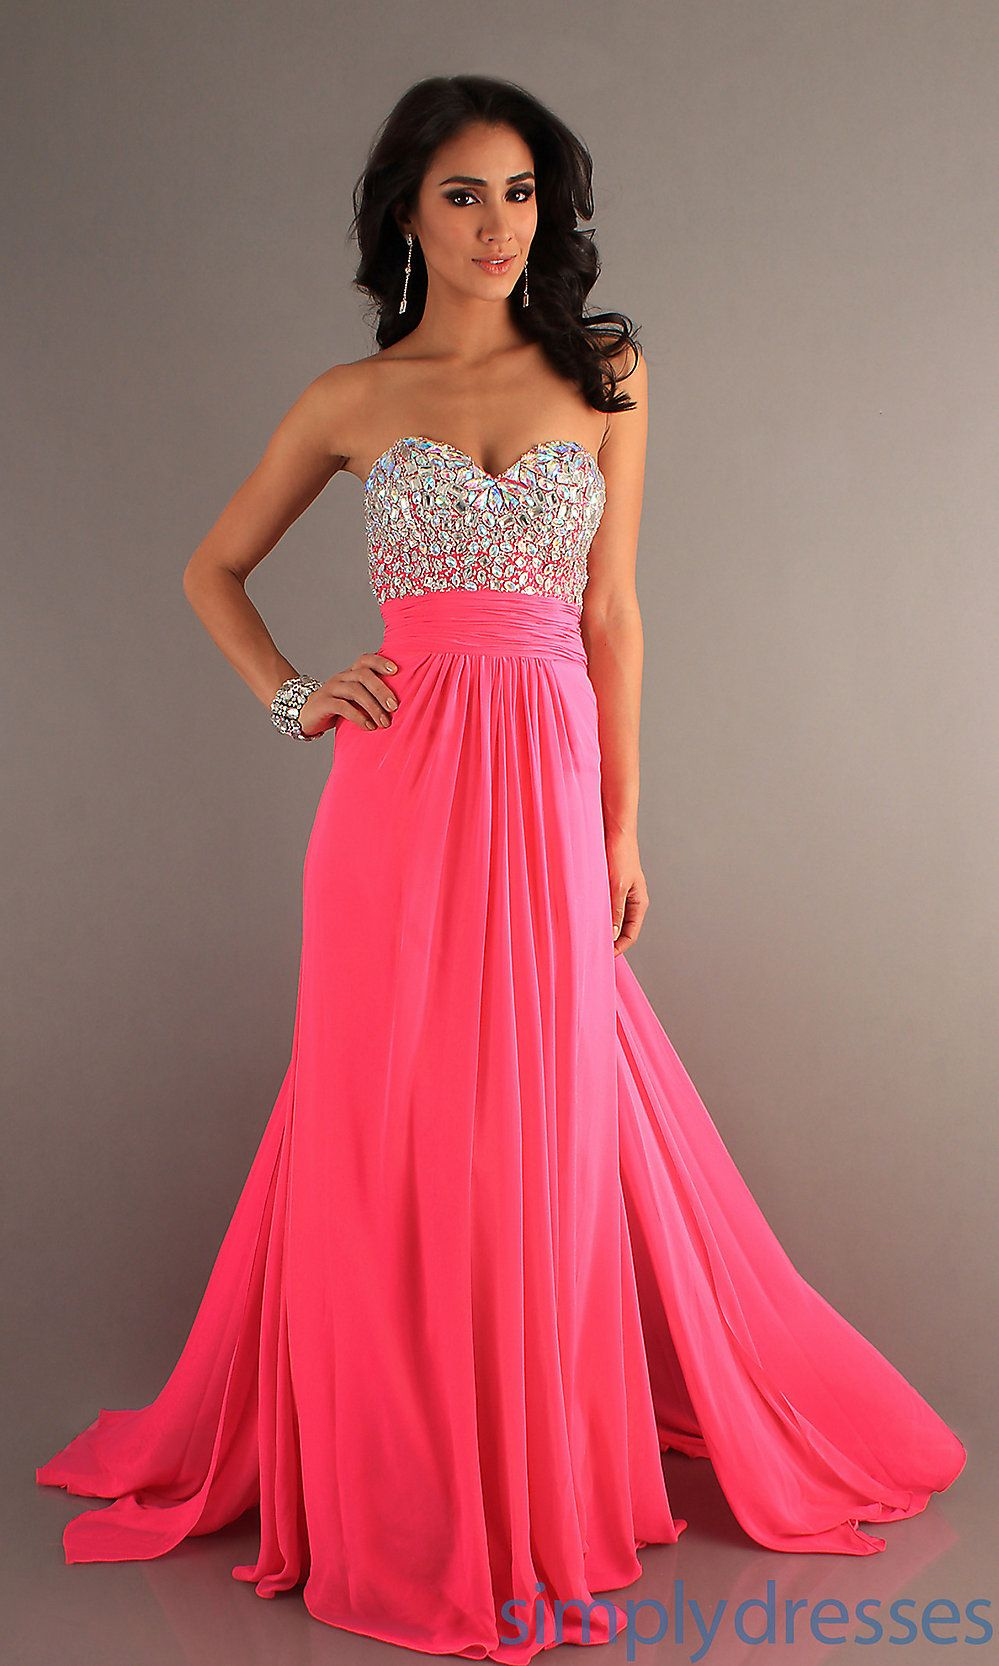 Long Open Back Formal Dress, Backless Prom Gowns - Simply Dresses ...